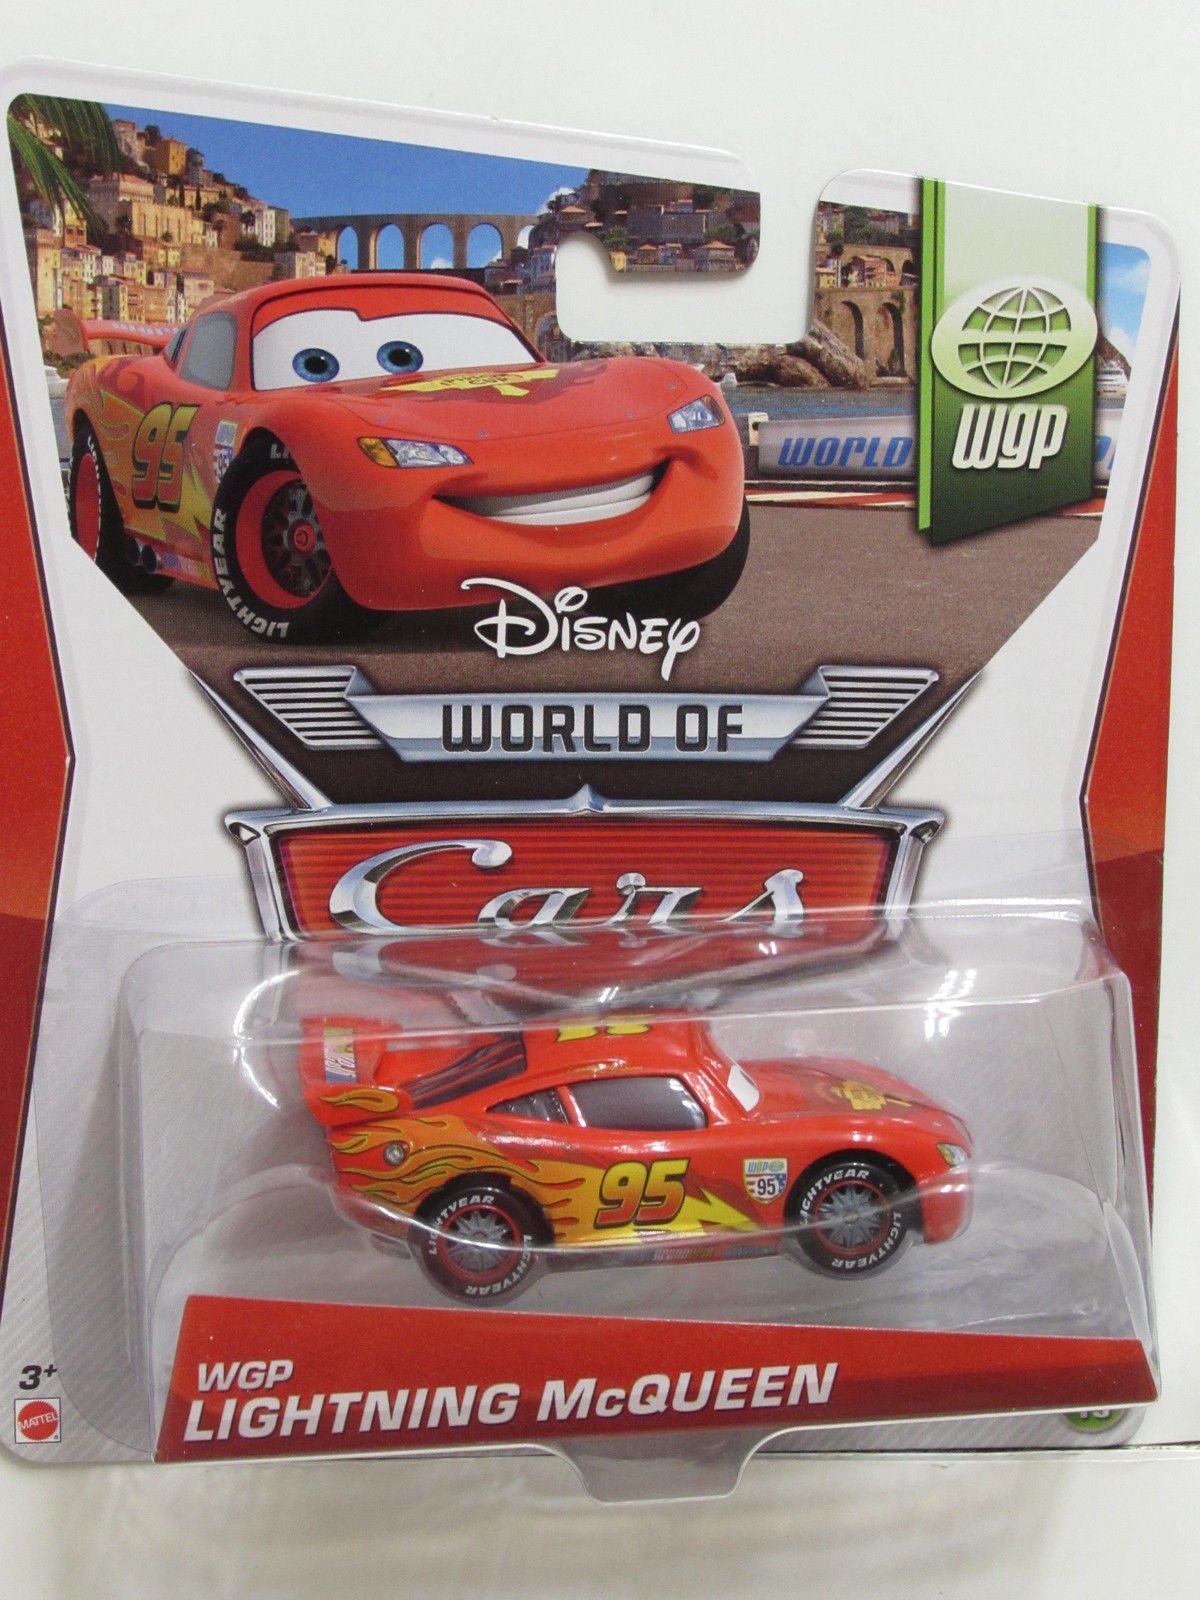 DISNEY PIXAR CARS WGP LIGHTNING McQUEEN - WORLD OF CARS